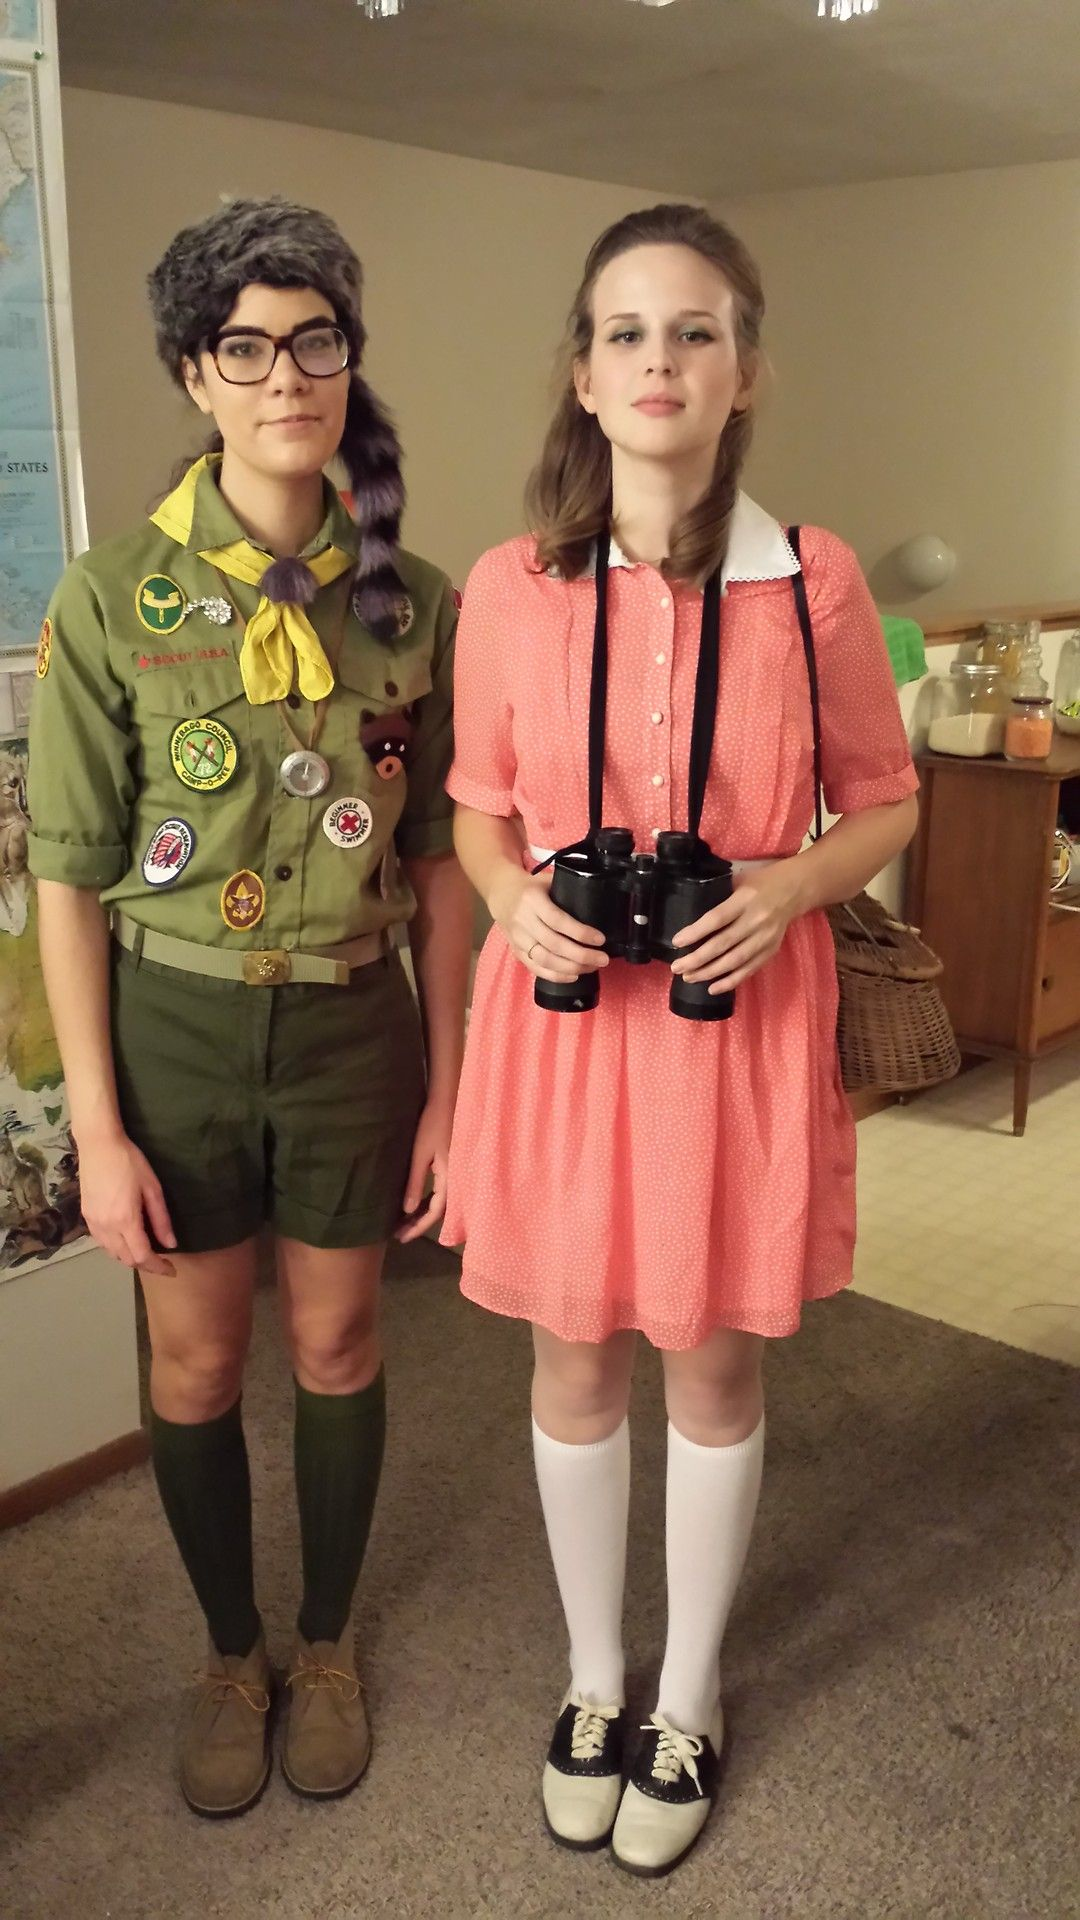 get the fuck out the girl on the right went to school with nerdy couples halloween